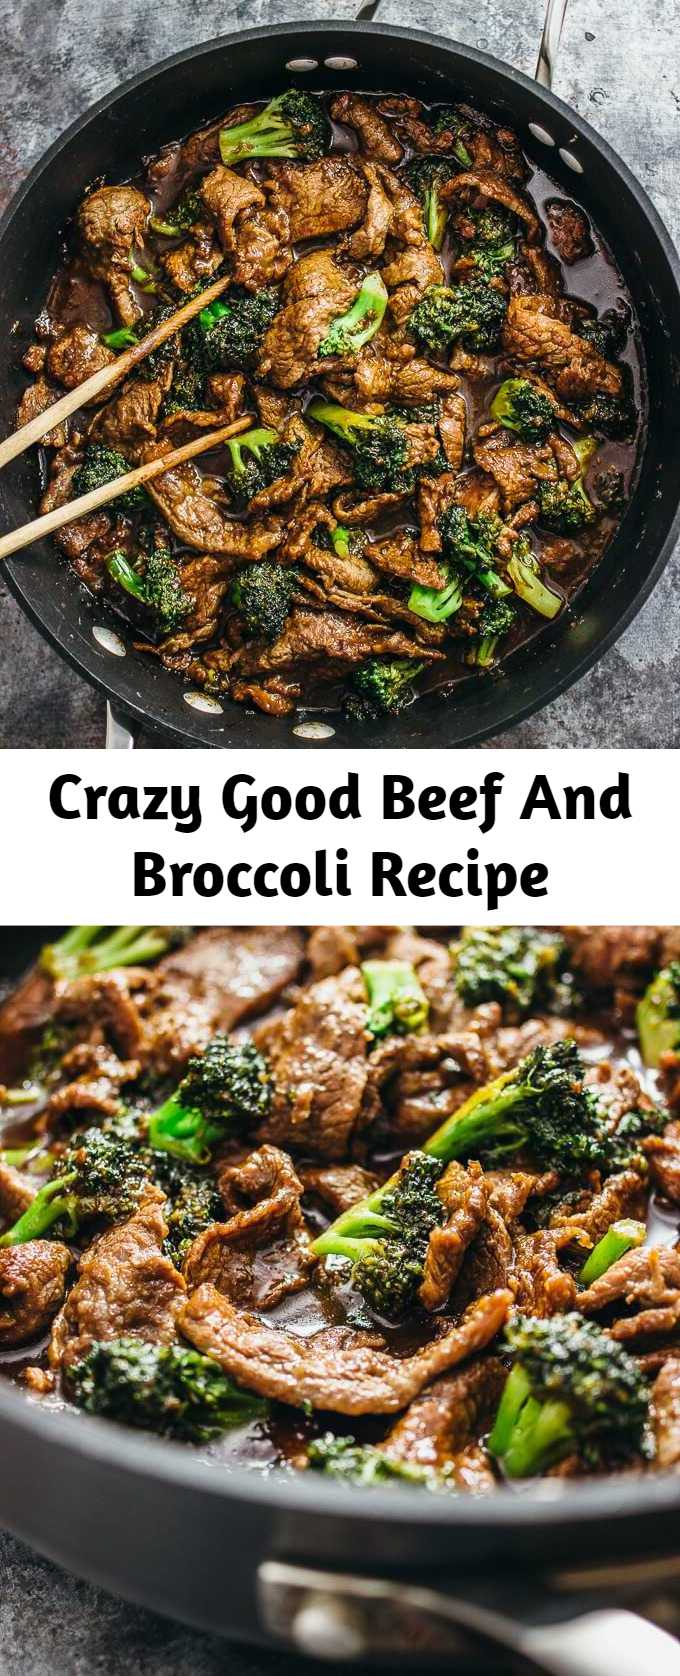 Crazy Good Beef And Broccoli Recipe - An easy recipe for authentic Chinese beef and broccoli. I love beef and broccoli because I can't resist anything with tender and tasty strips of flank steak, and it's such an easy one-pan stir fry recipe that takes less than 30 minutes total. Also, if you're a huge broccoli fan like me, you'll love these juicy and flavorful bites of broccoli in between mouthfuls of meat and rice.